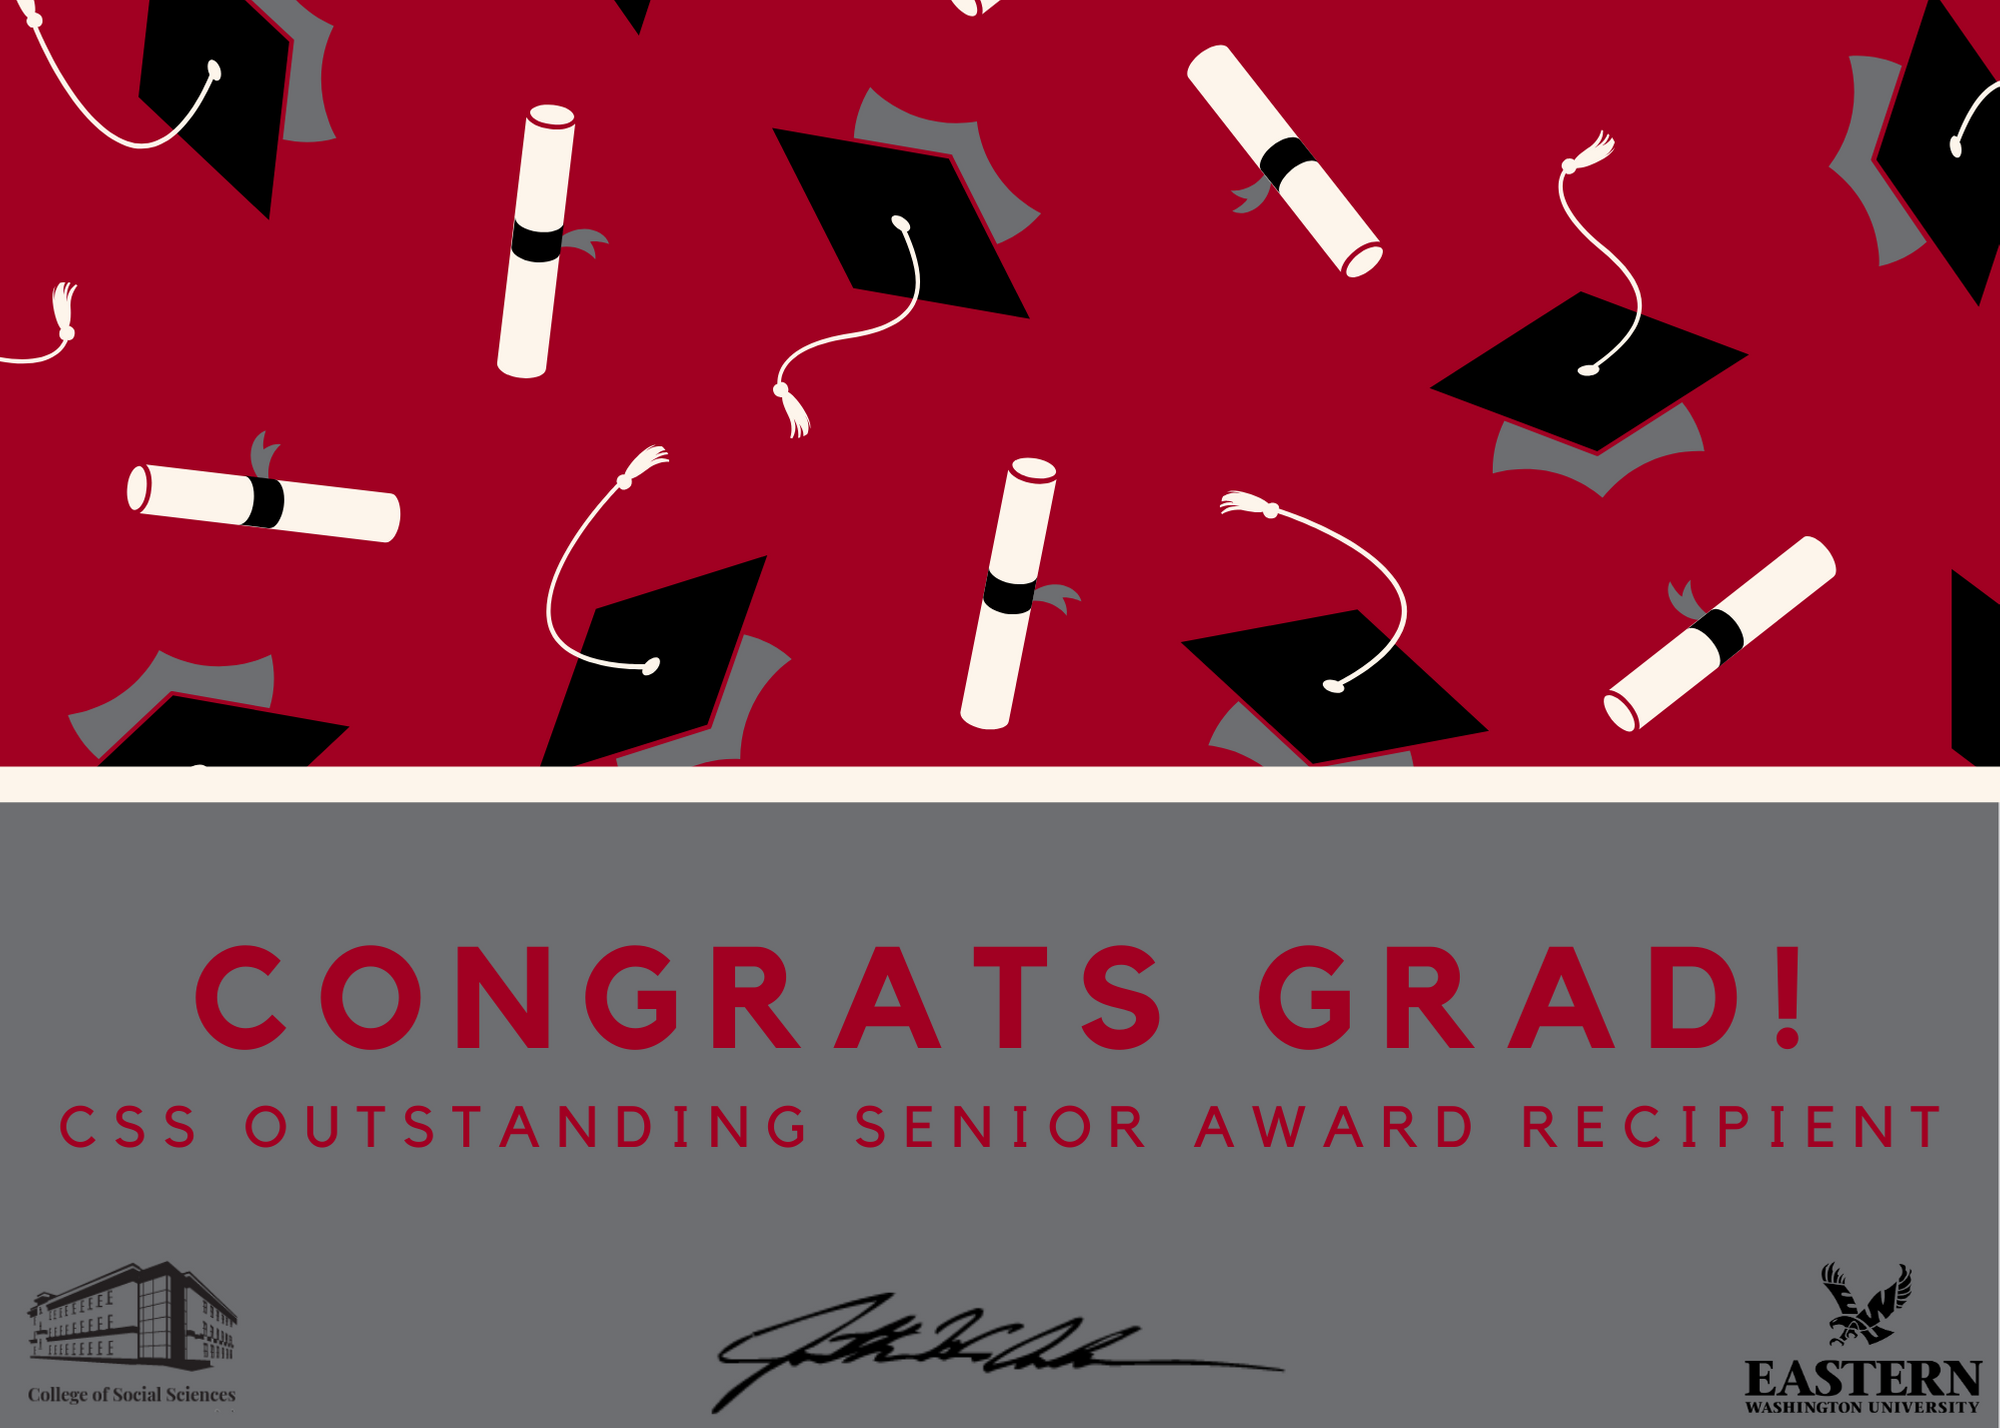 2112-caps-and-diplomas-pattern-graduation-card-2.png